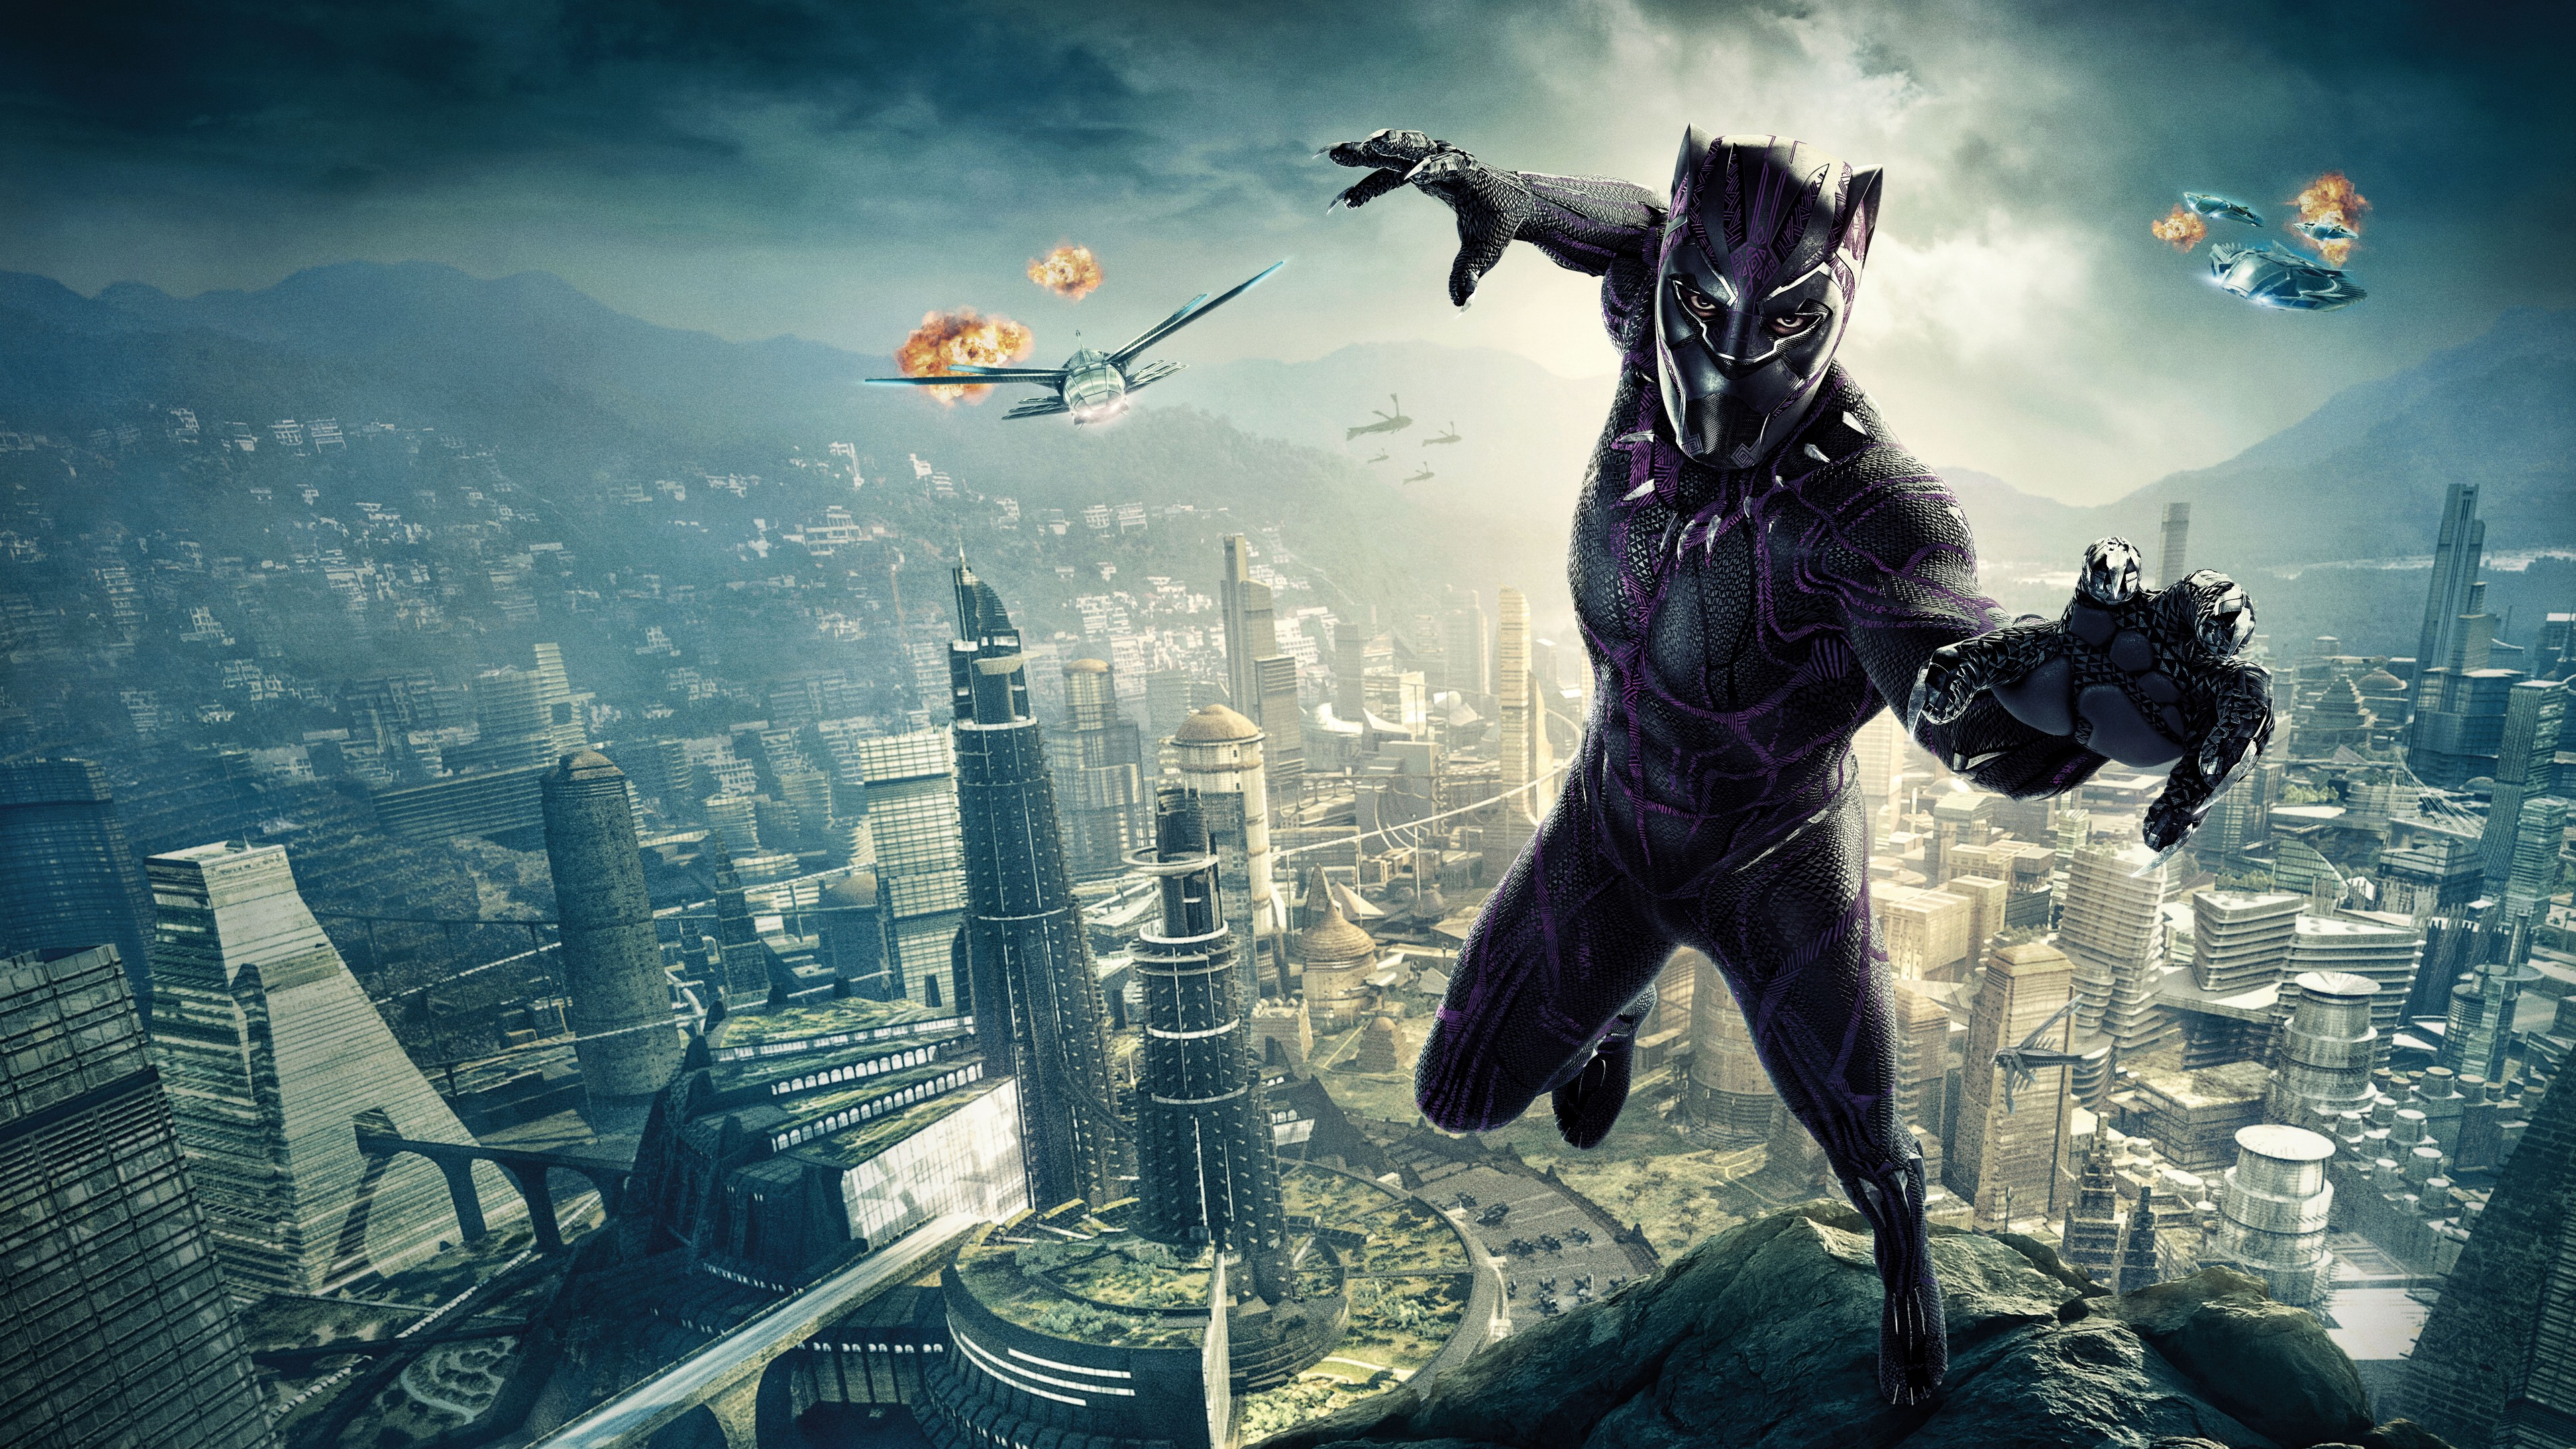 3d Love Wallpapers For Windows 8 Black Panther 4k 8k Wallpapers Hd Wallpapers Id 22918